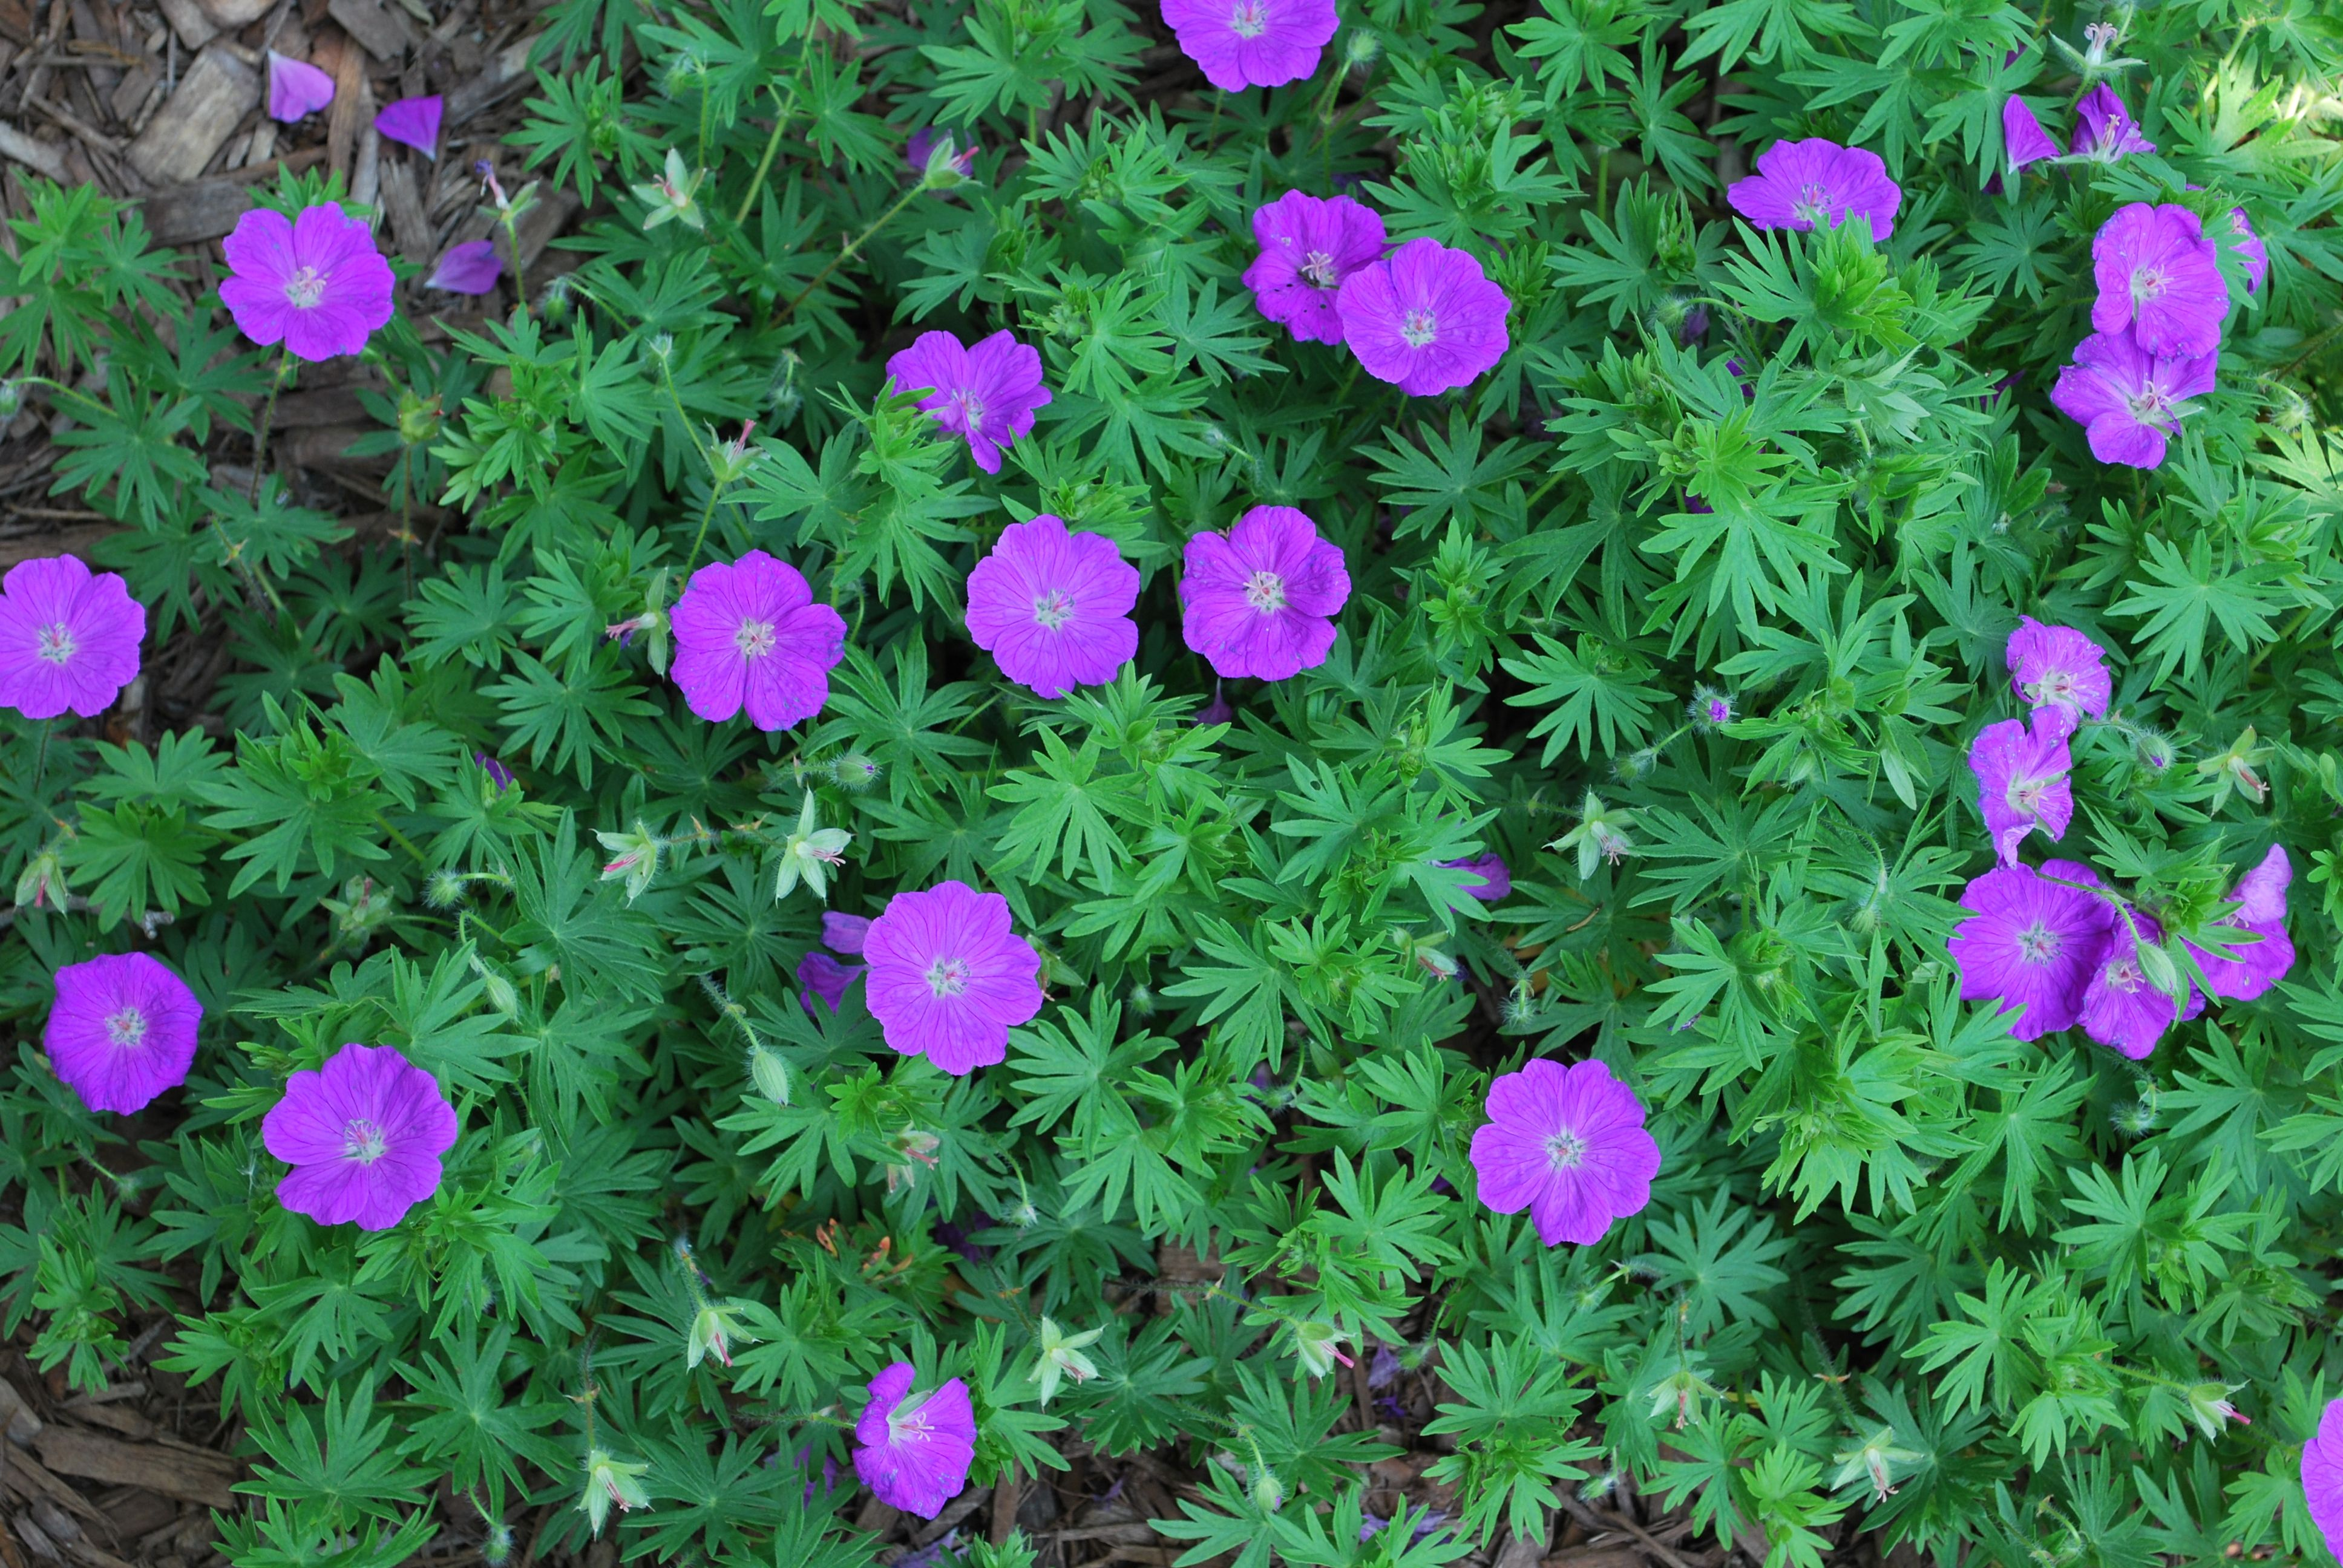 """'Alpenglow' Geranium - Geranium sanguineum 'Alpenglow'. Planted Spring, 2014. 1"""" lavender-pink flowers above rich green semi-evergreen leaves. Bloom time May-June. Fall reds/yellows. Full sun to light shade. 8-12"""" tall. Hardiness zone 3. Attracts butterflies; deer resistant; drought resistant. Grown by Grown Earth Friendly."""